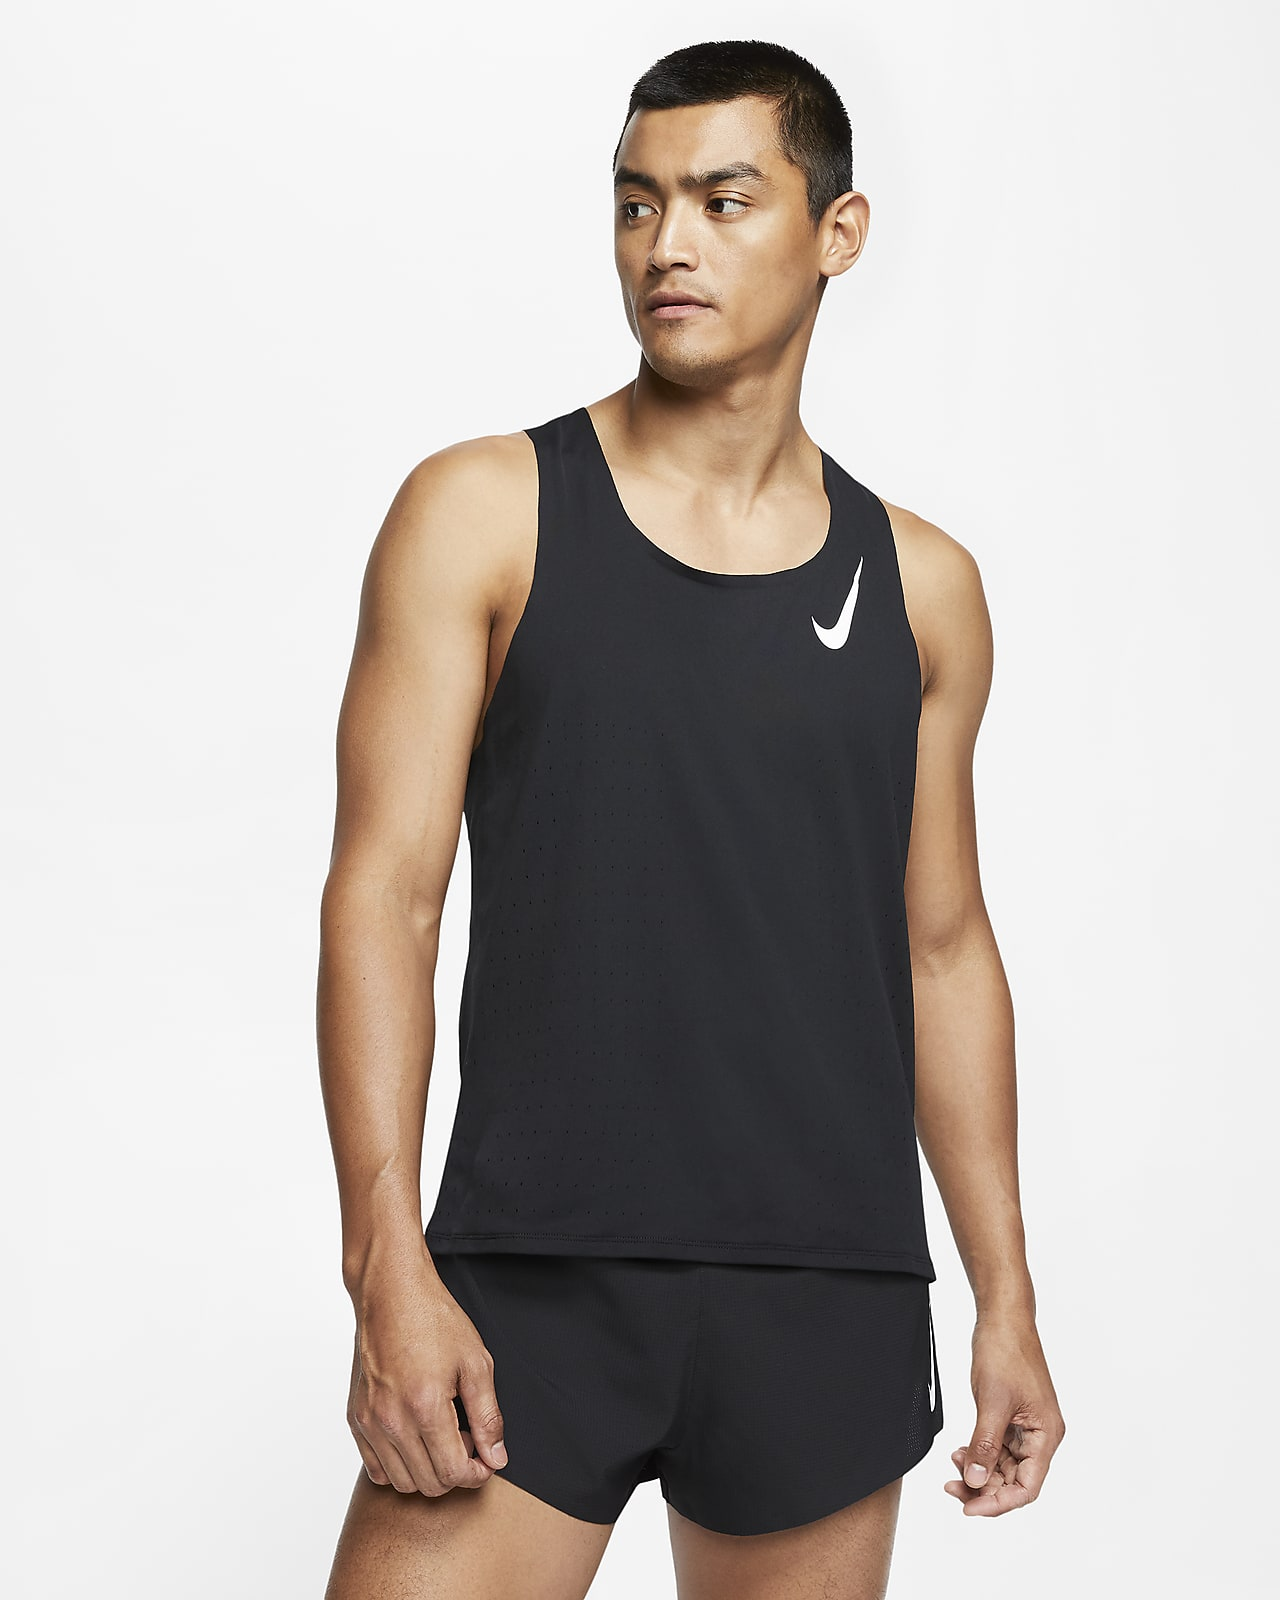 Nike AeroSwift Men's Running Singlet